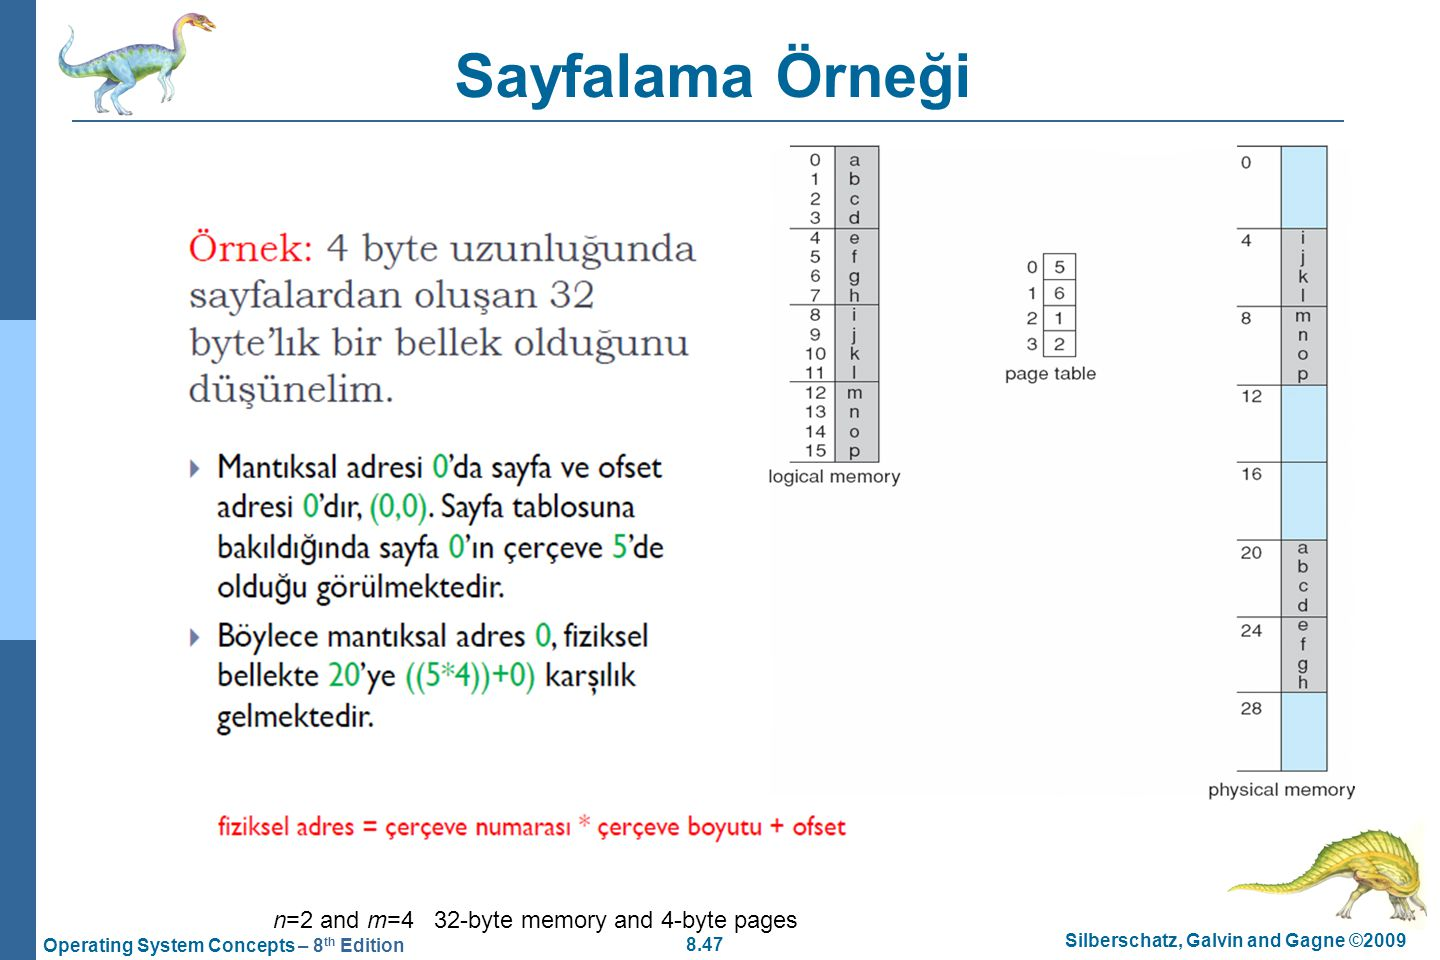 Sayfalama Örneği n=2 and m=4 32-byte memory and 4-byte pages